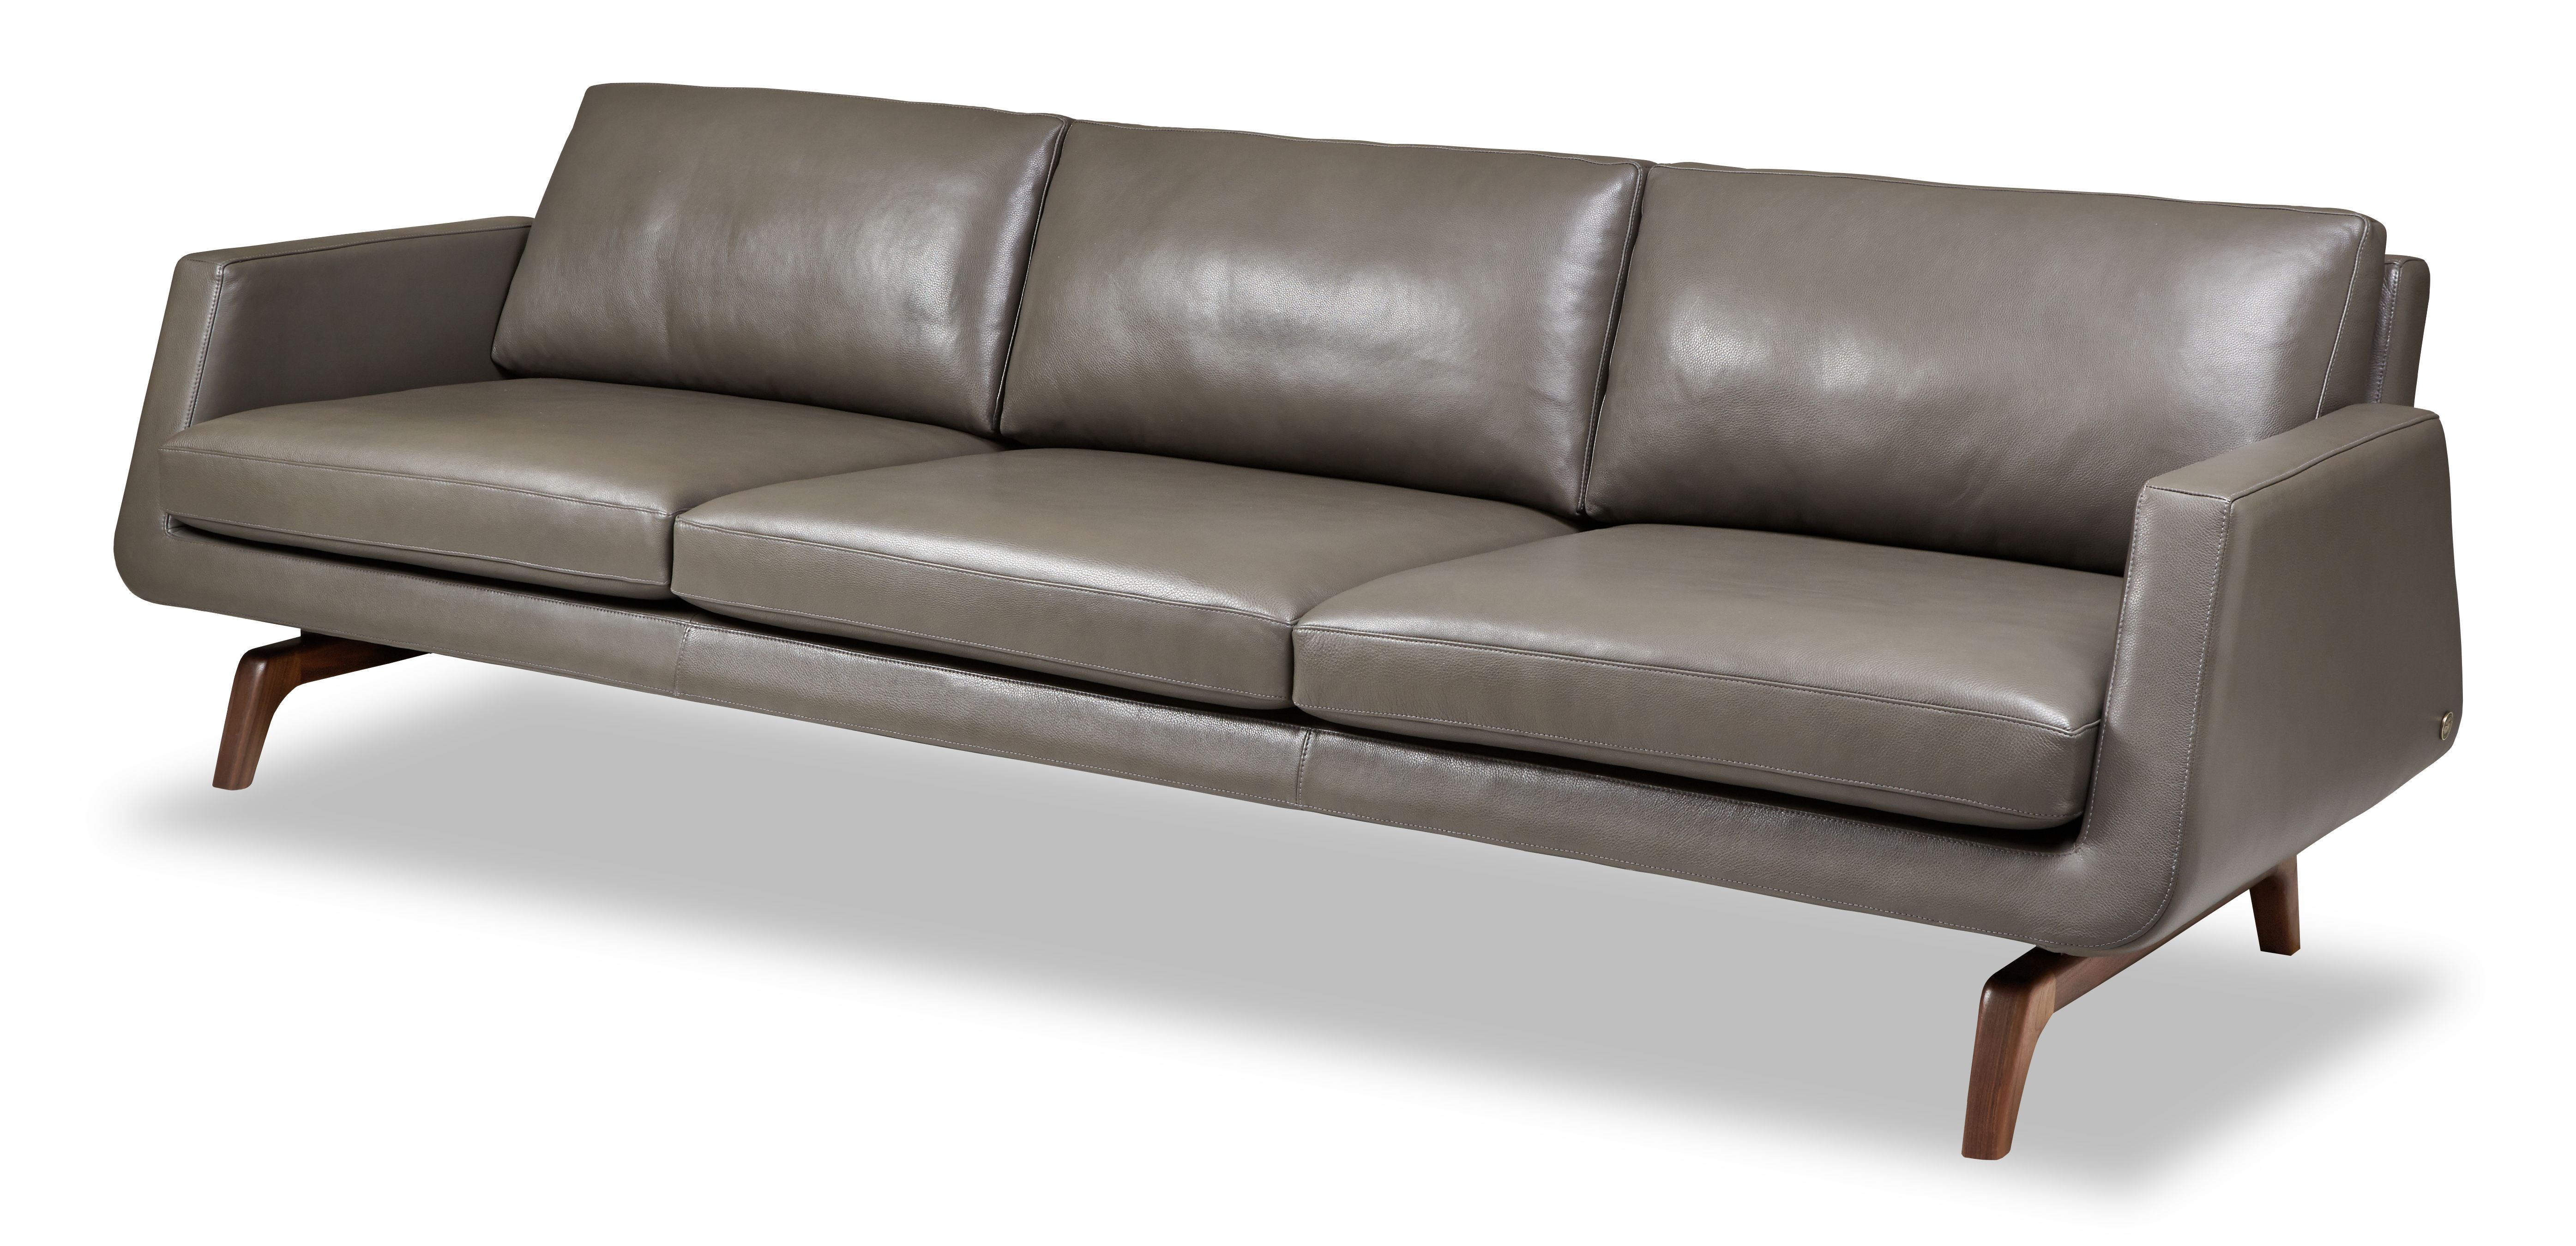 American leather nash sectional with chaises